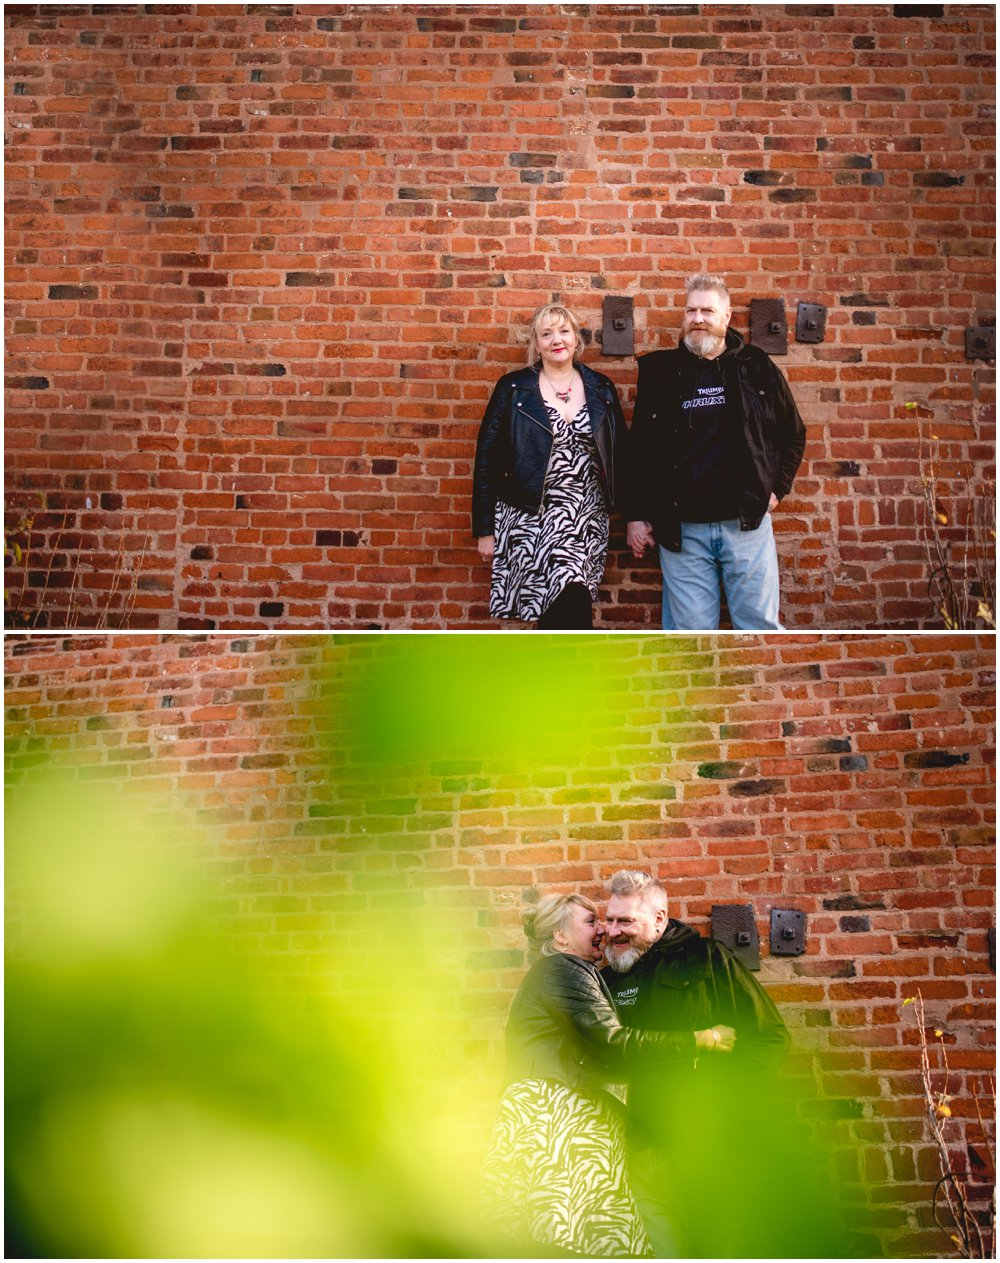 Sarah and Johnny's engagement shoot with Triumph motorbike at Sarehole Mill, Moseley, Birmingham by West Midlands based photographer Lisa Carpenter Photography